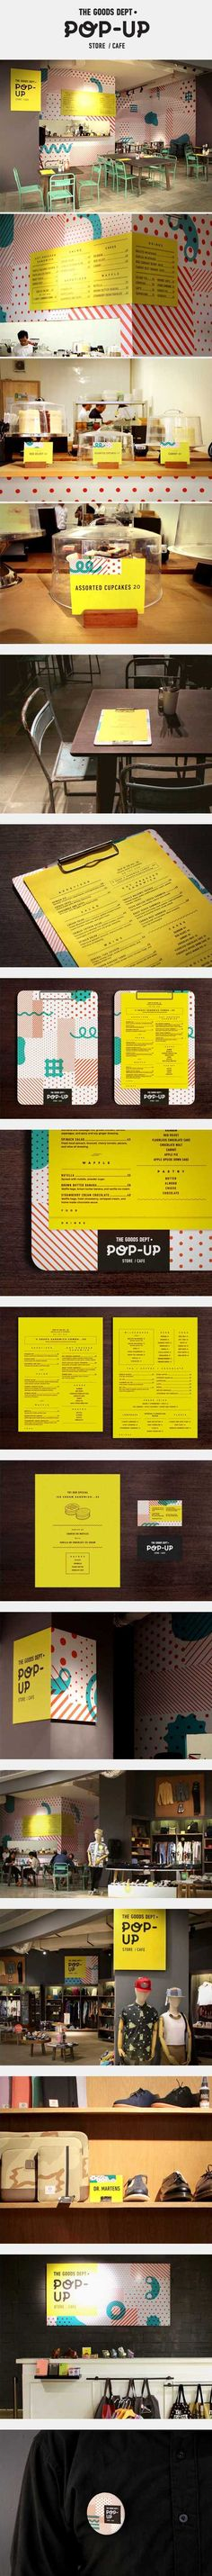 The Goods Dept rolled out a pop-up store/cafe in preparation for its third store that is soon opening in Lotte Avenue. As a twist to this temporary space, we along with The Goods Dept's team decided to introduce pattern and colors alongside their monochromatic colour palette to create exciting contrast. #PopUpRetail #RetailDesign pop up shops, brand identity, behance, inspir, popup storecaf, clipboard, design, dept popup